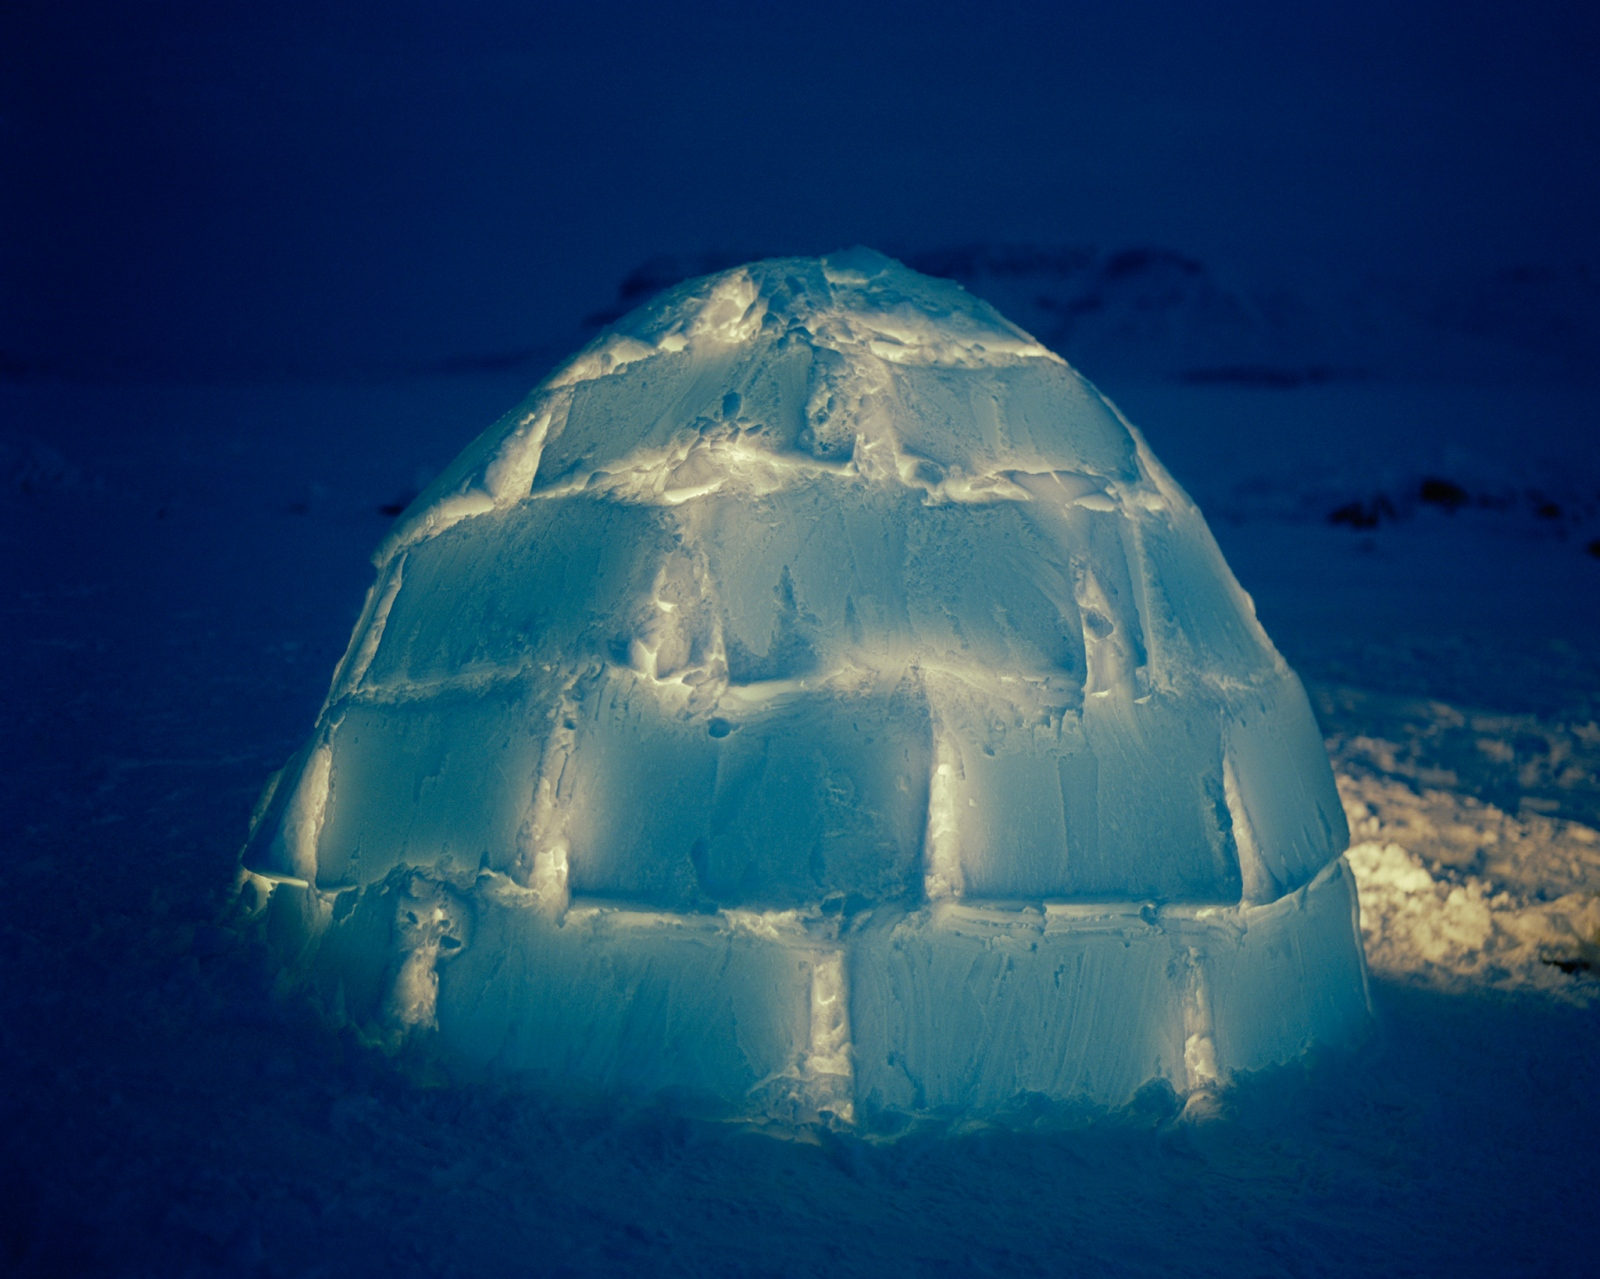 An iglu glows through the afternoon on the darkest day of the year. Jack Willie, a photographer in Arctic Bay, asked his uncle to help him build one, using blocks of wind-packed snow cut with a snow knife. While no longer frequently used, many Inuit know how to build iglus for survival shelters, should bad weather conditions arise when hunting out on the land.